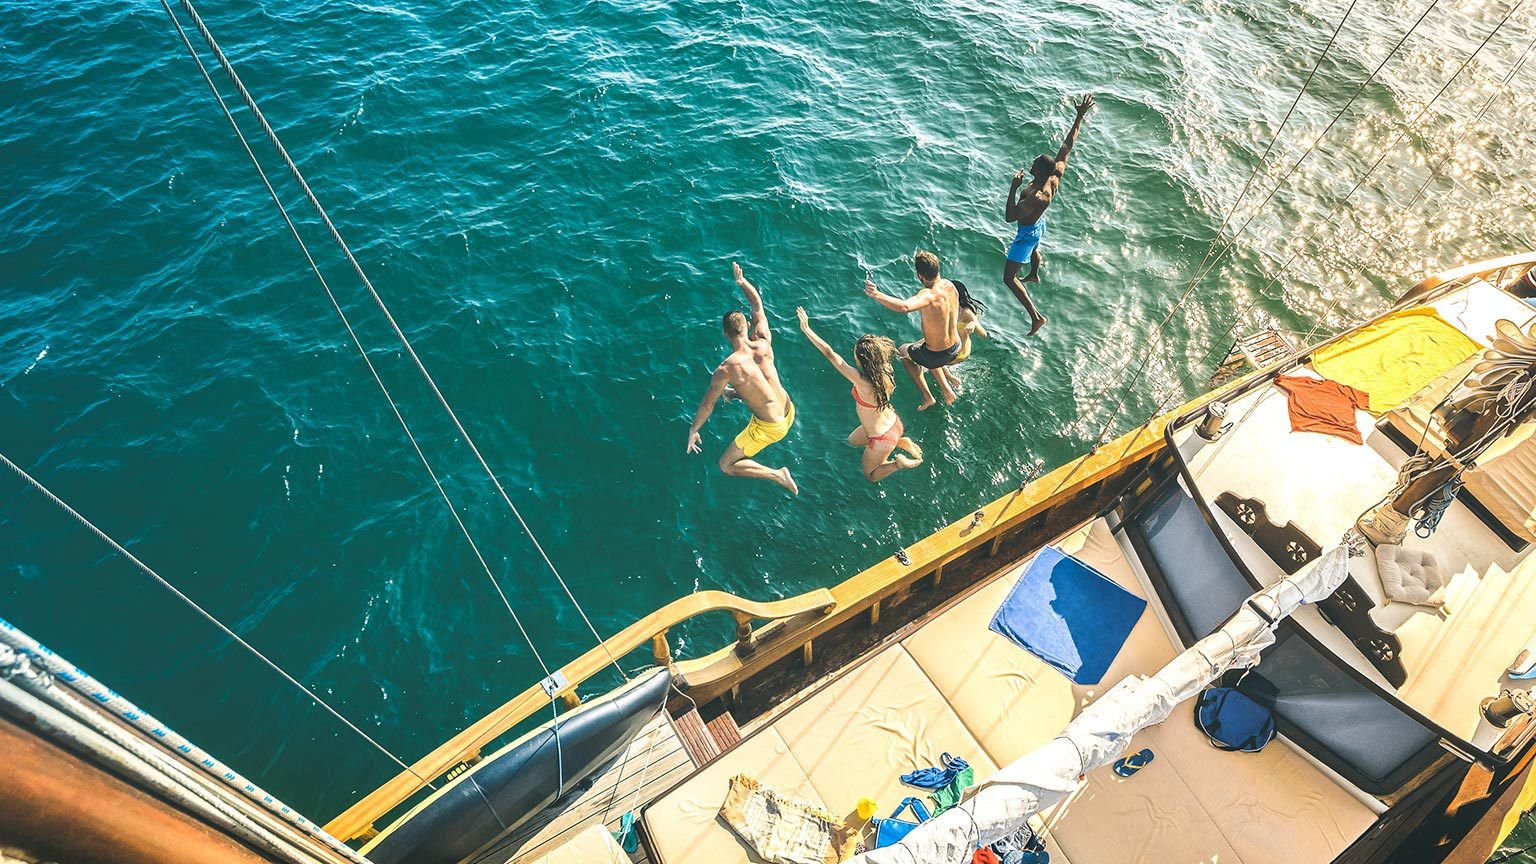 People jumping off a boat in Italy into the Mediterranean